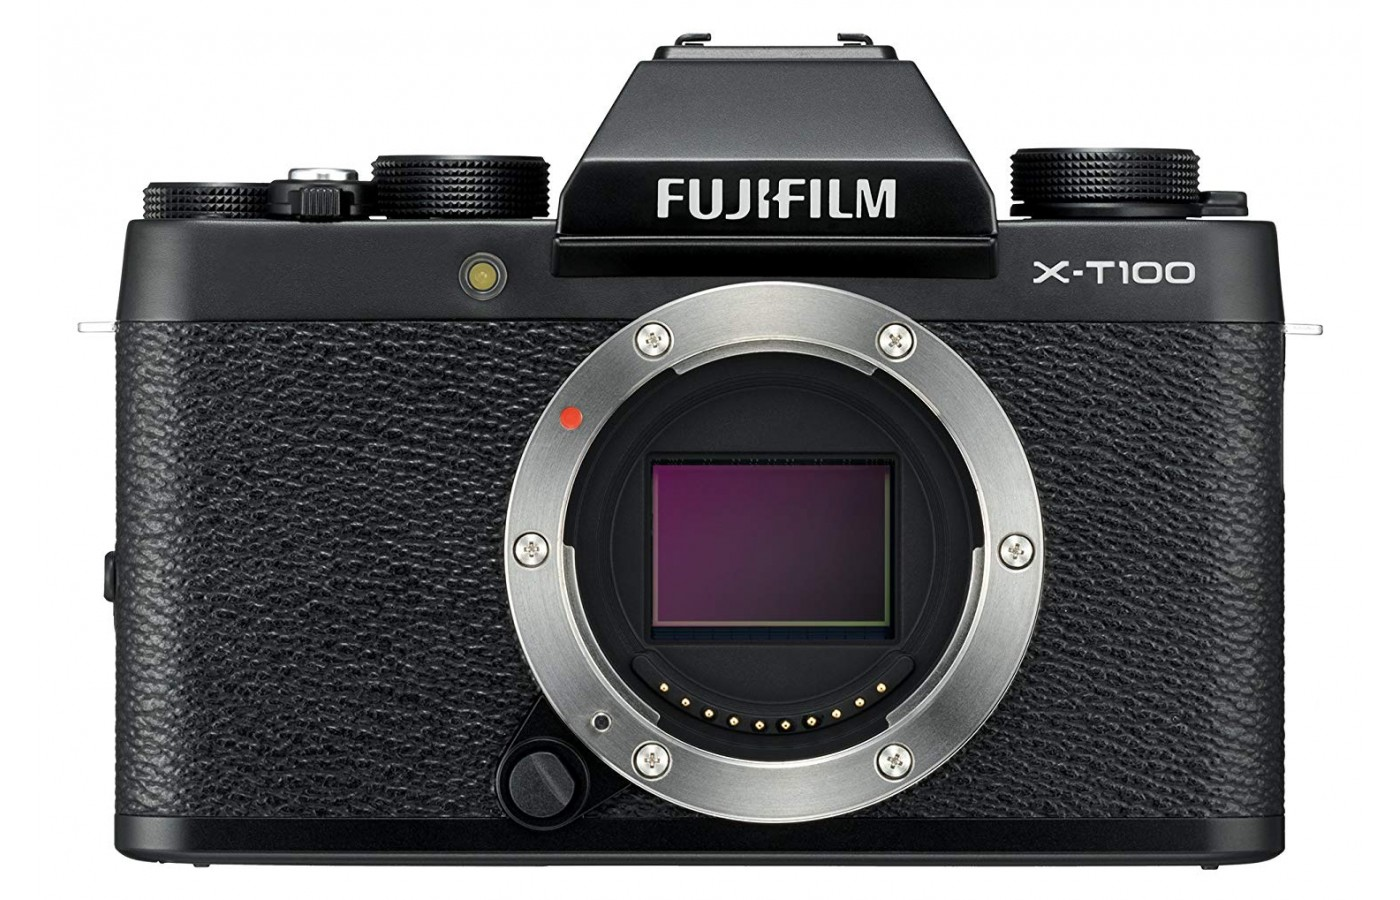 This is a great camera for beginners.